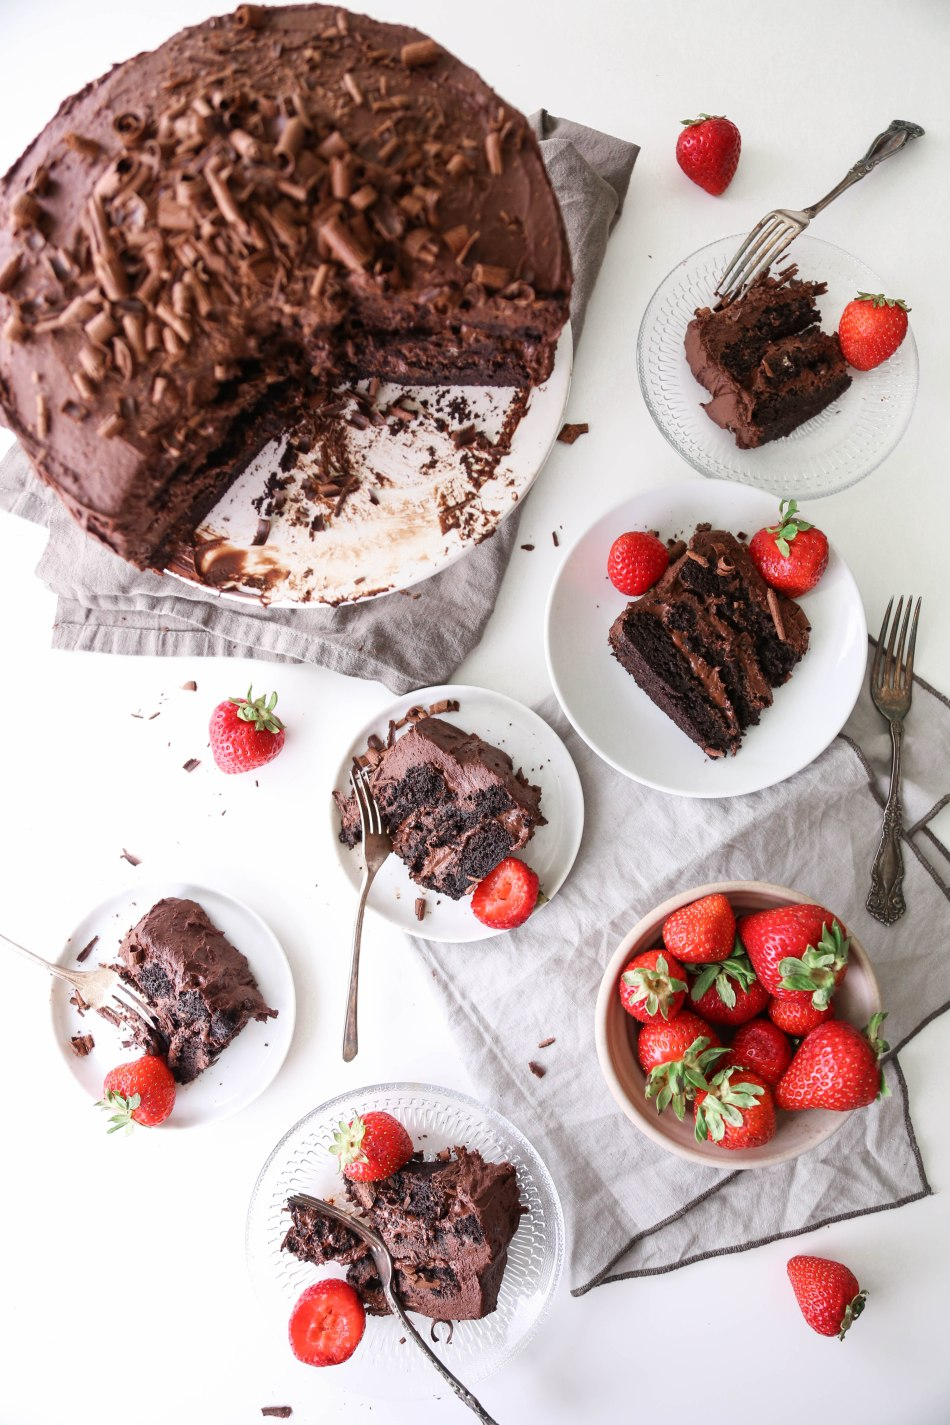 Vegan Chocolate Cake with Whipped Ganache | Vegan and Gluten-Free | Wife Mama Foodie